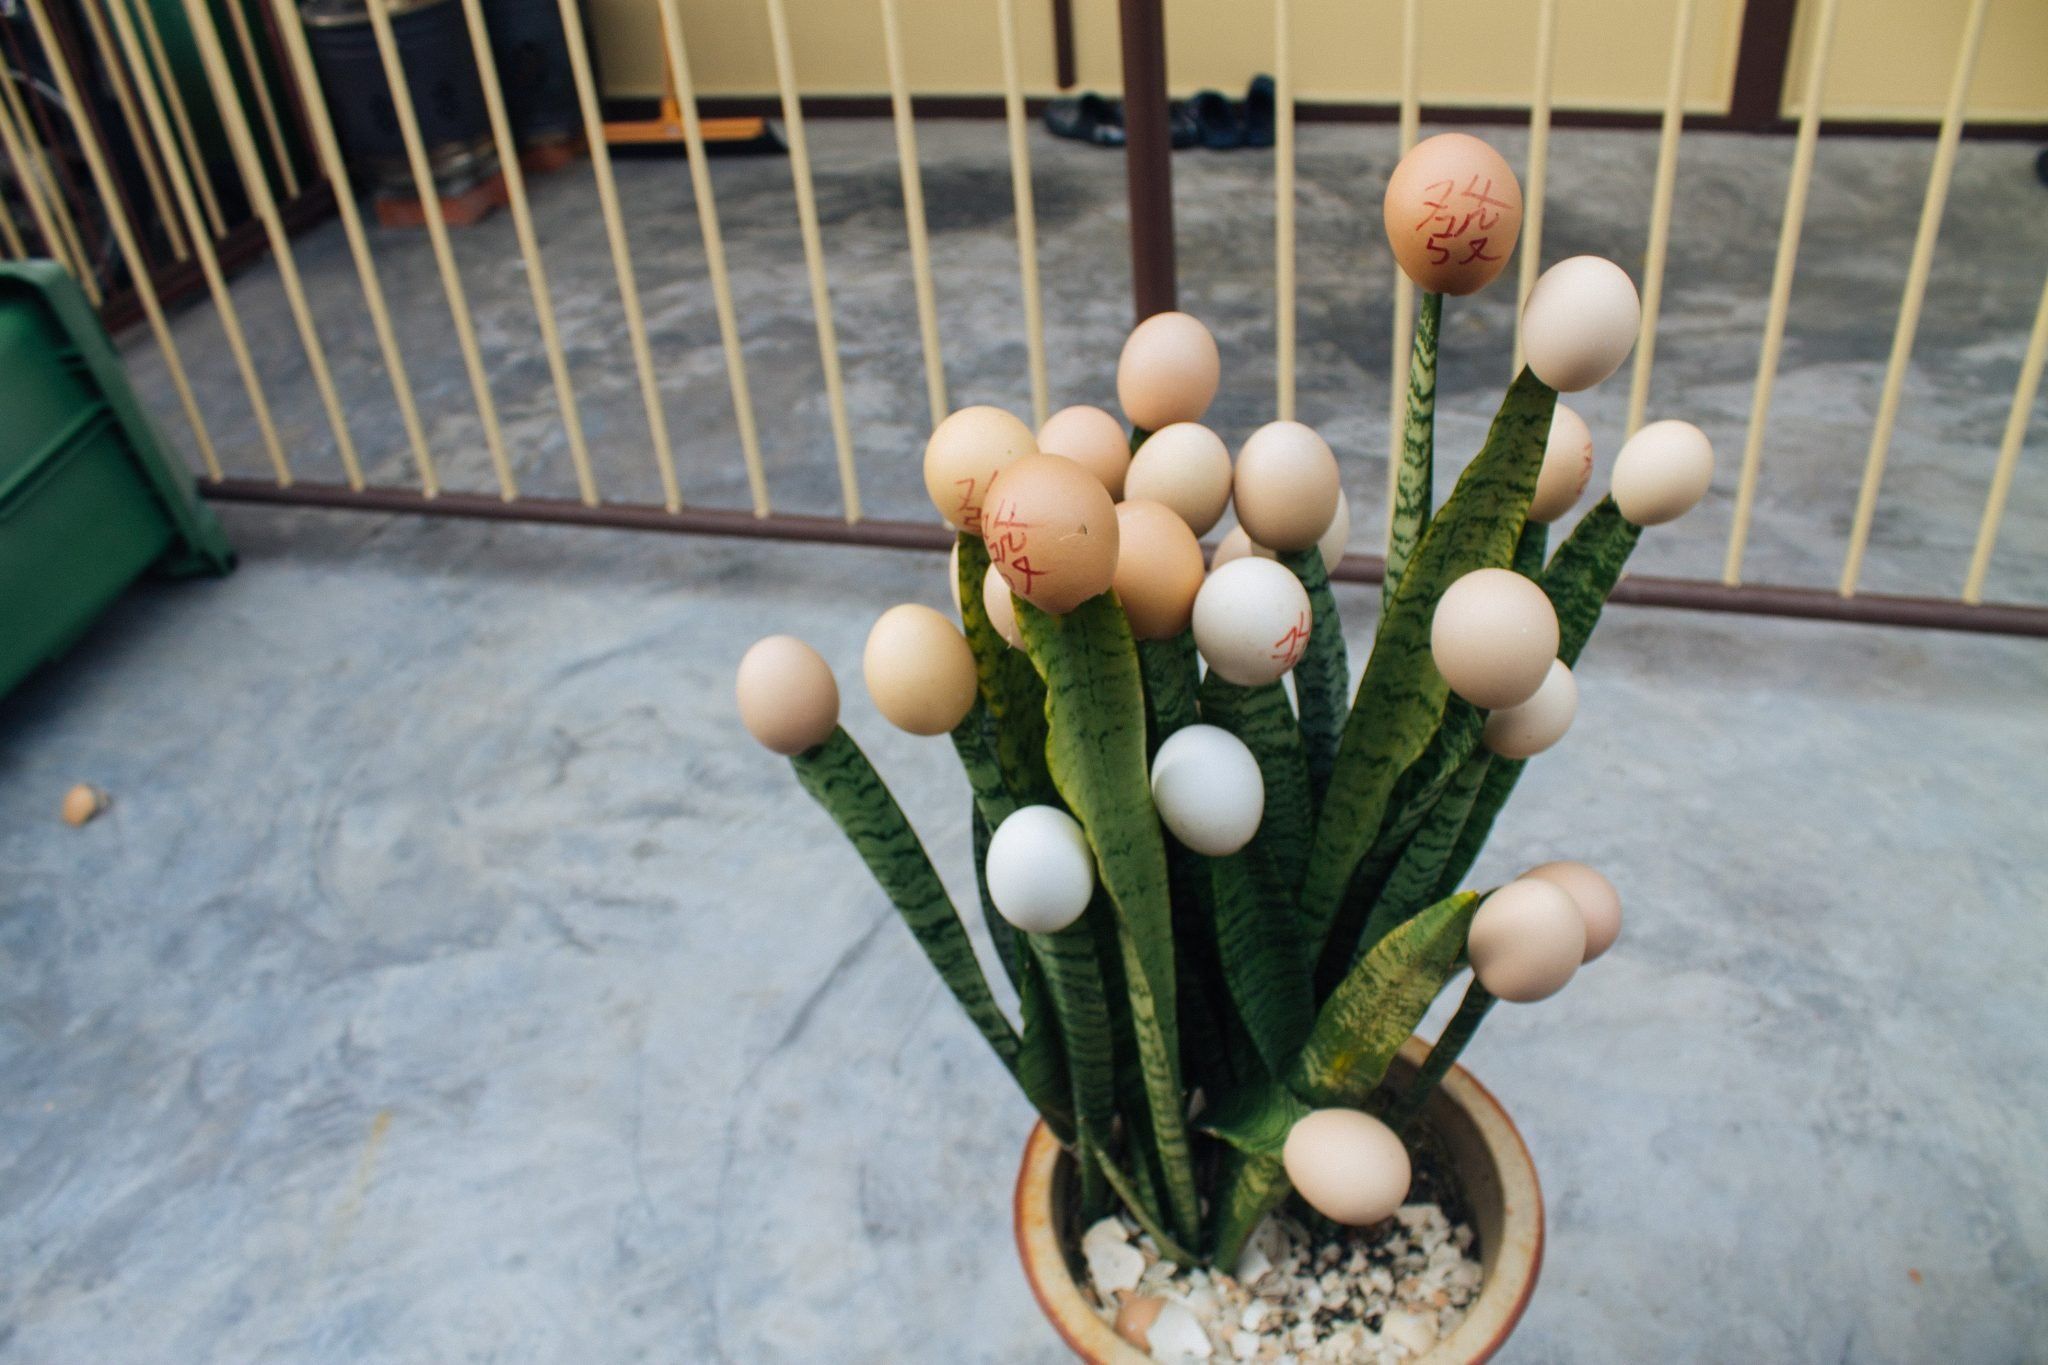 Egg shell bouquet in Georgetown, Penang Island, Malaysia | Asia Travel